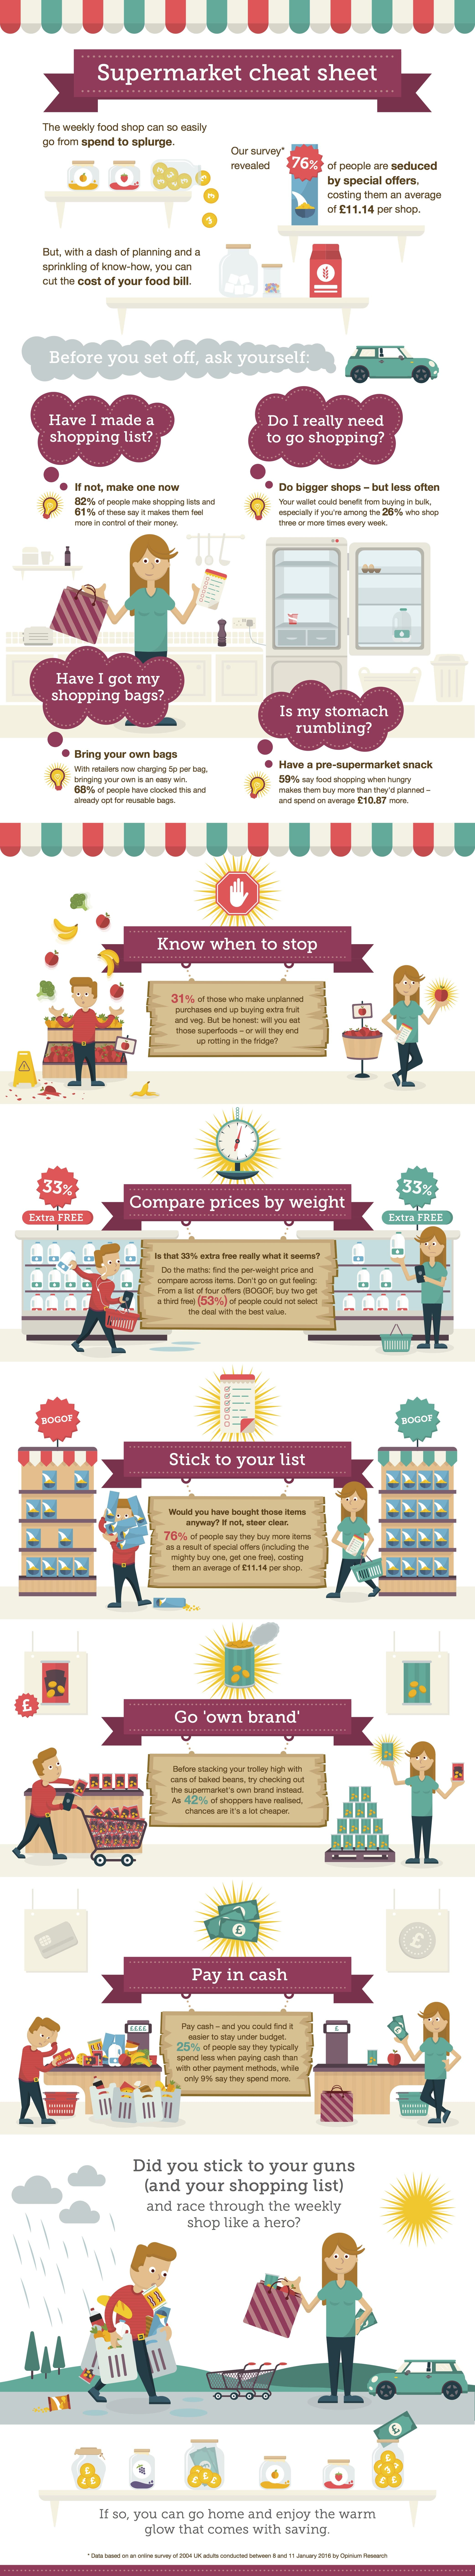 Supermarket special offers – How they make you spend more £££!!